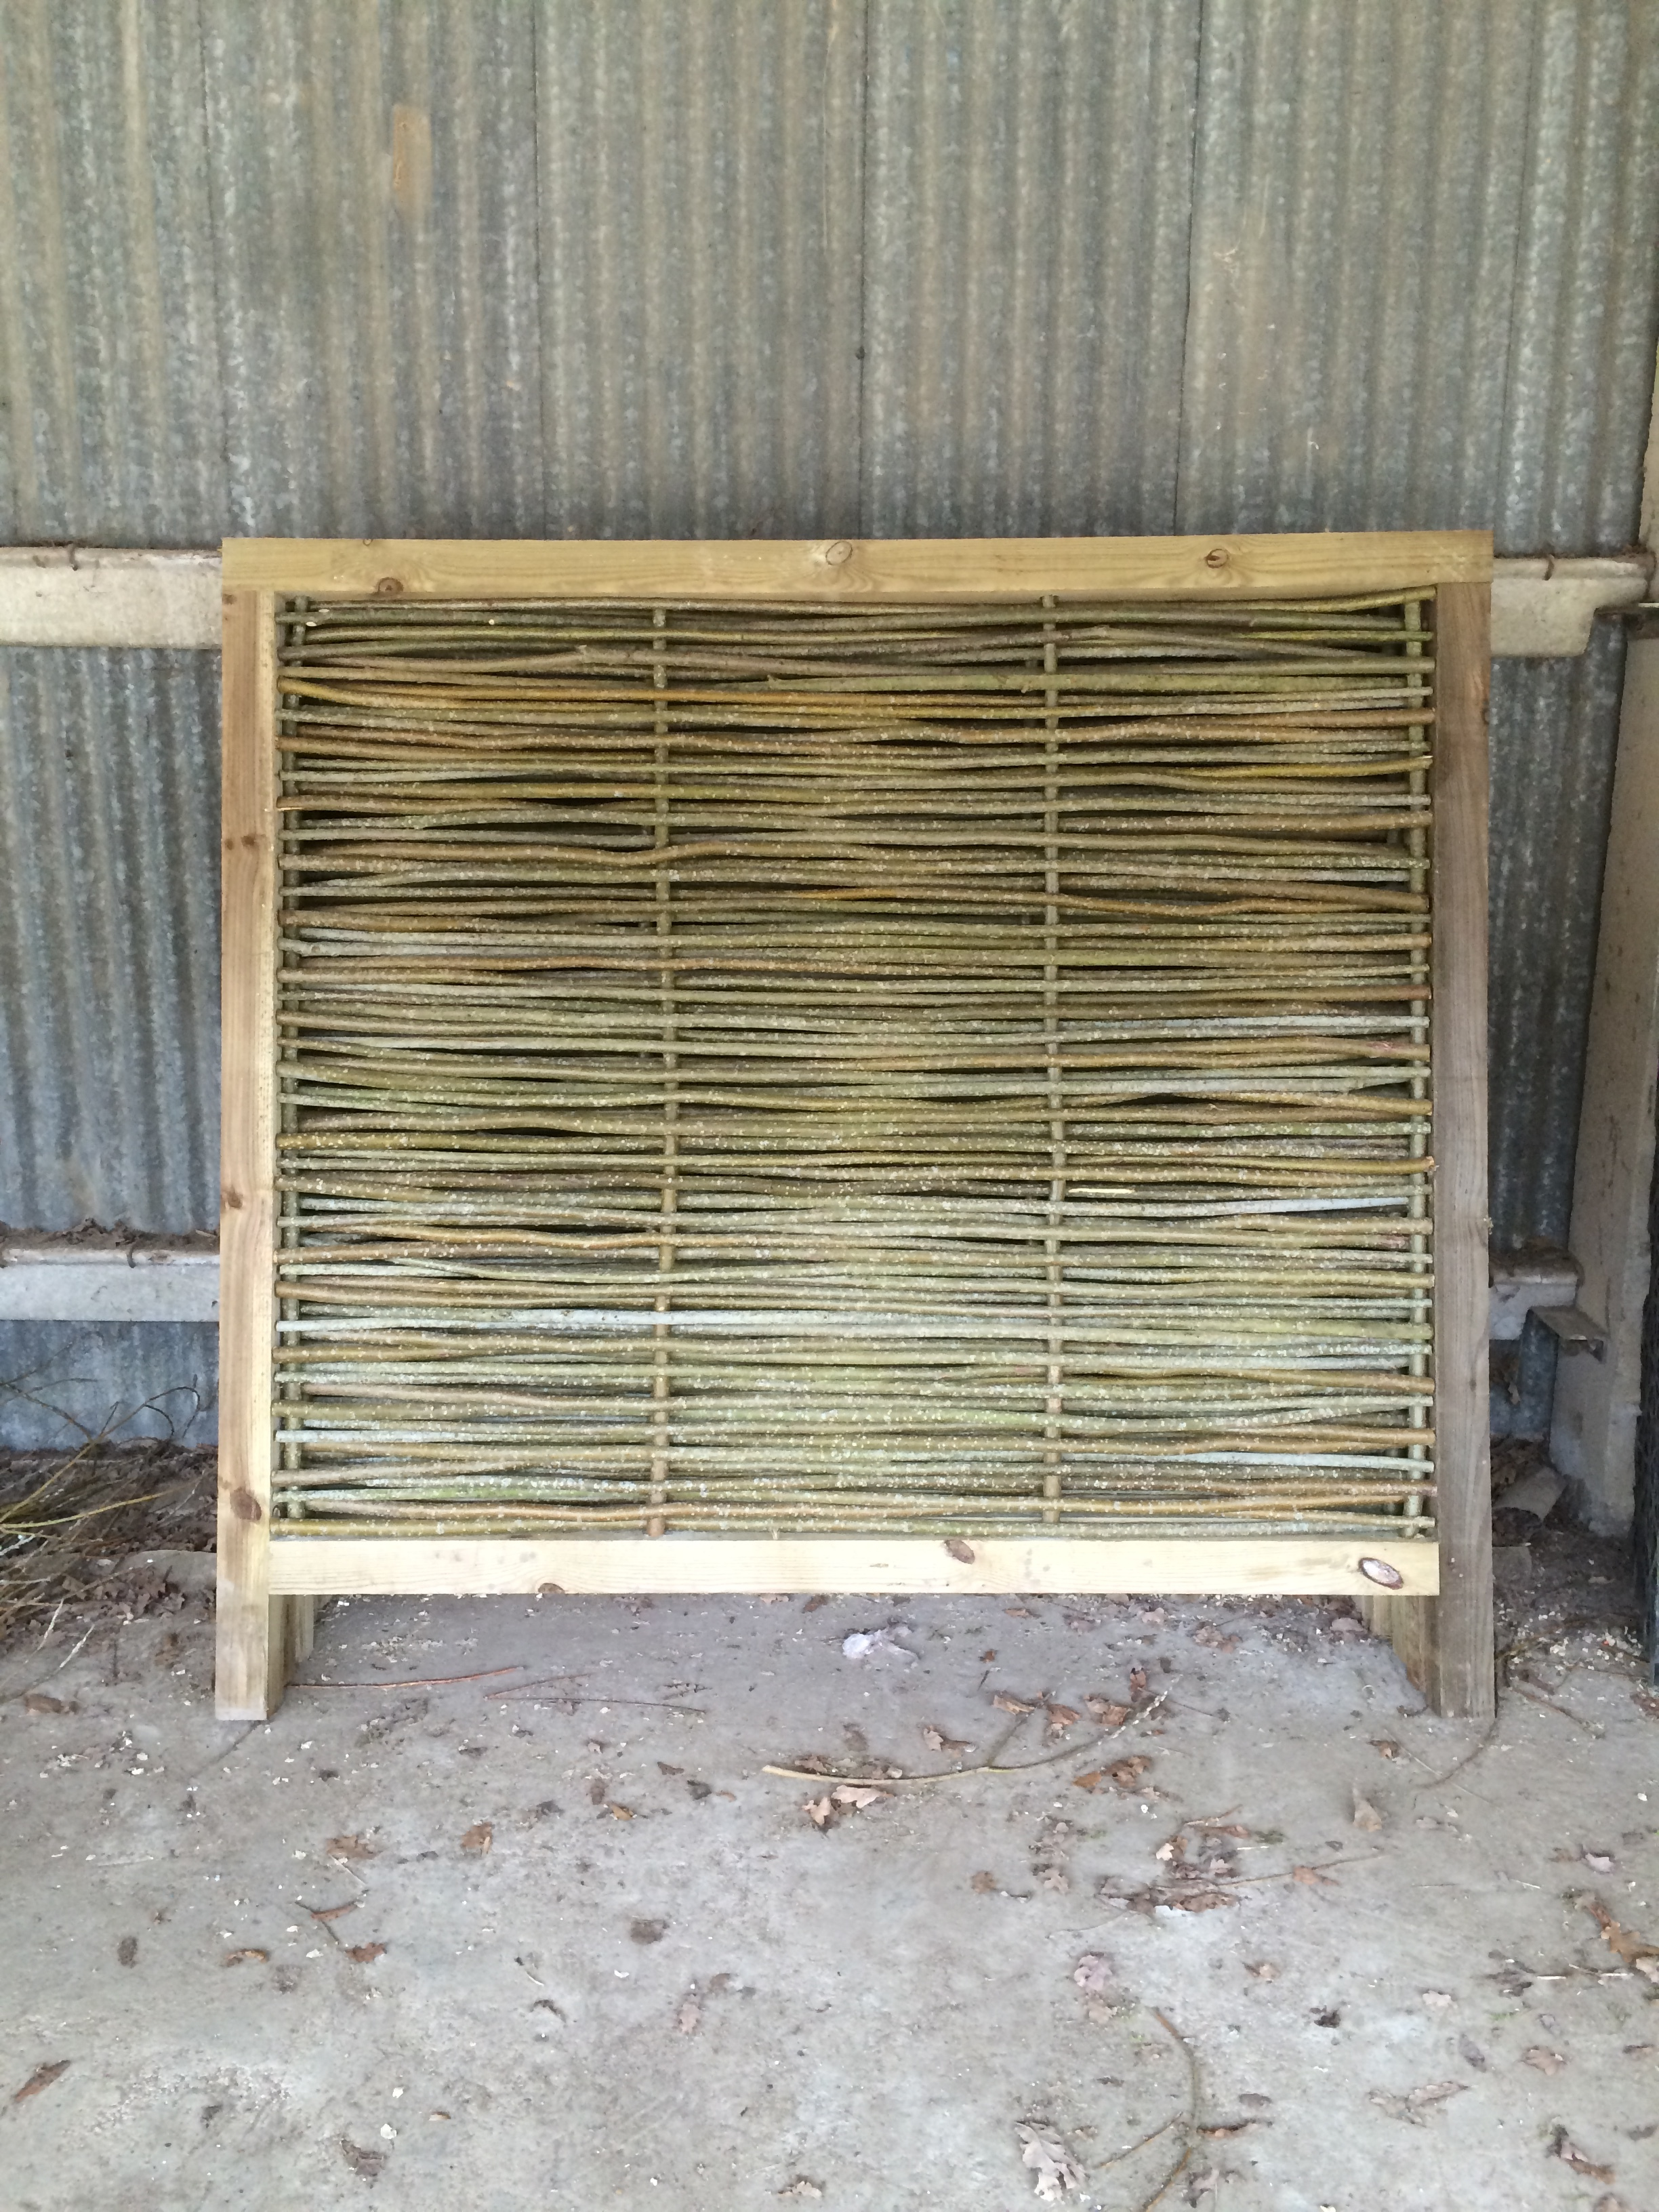 Woven willow panel/frame